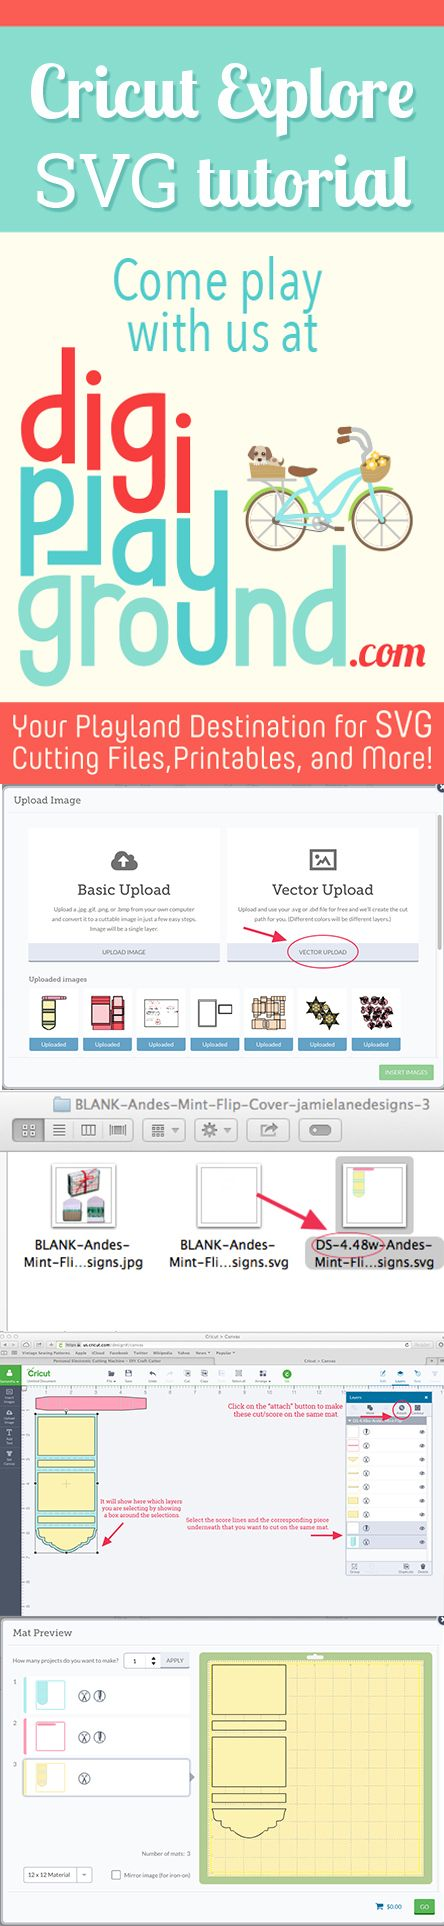 Fantastic tutorial guiding you through the process of using digiplayground.com SVG conversions for the Cricut Explore in your Design Space Software. This tutorial features a FREE 3D SVG file, that you can get in the store.